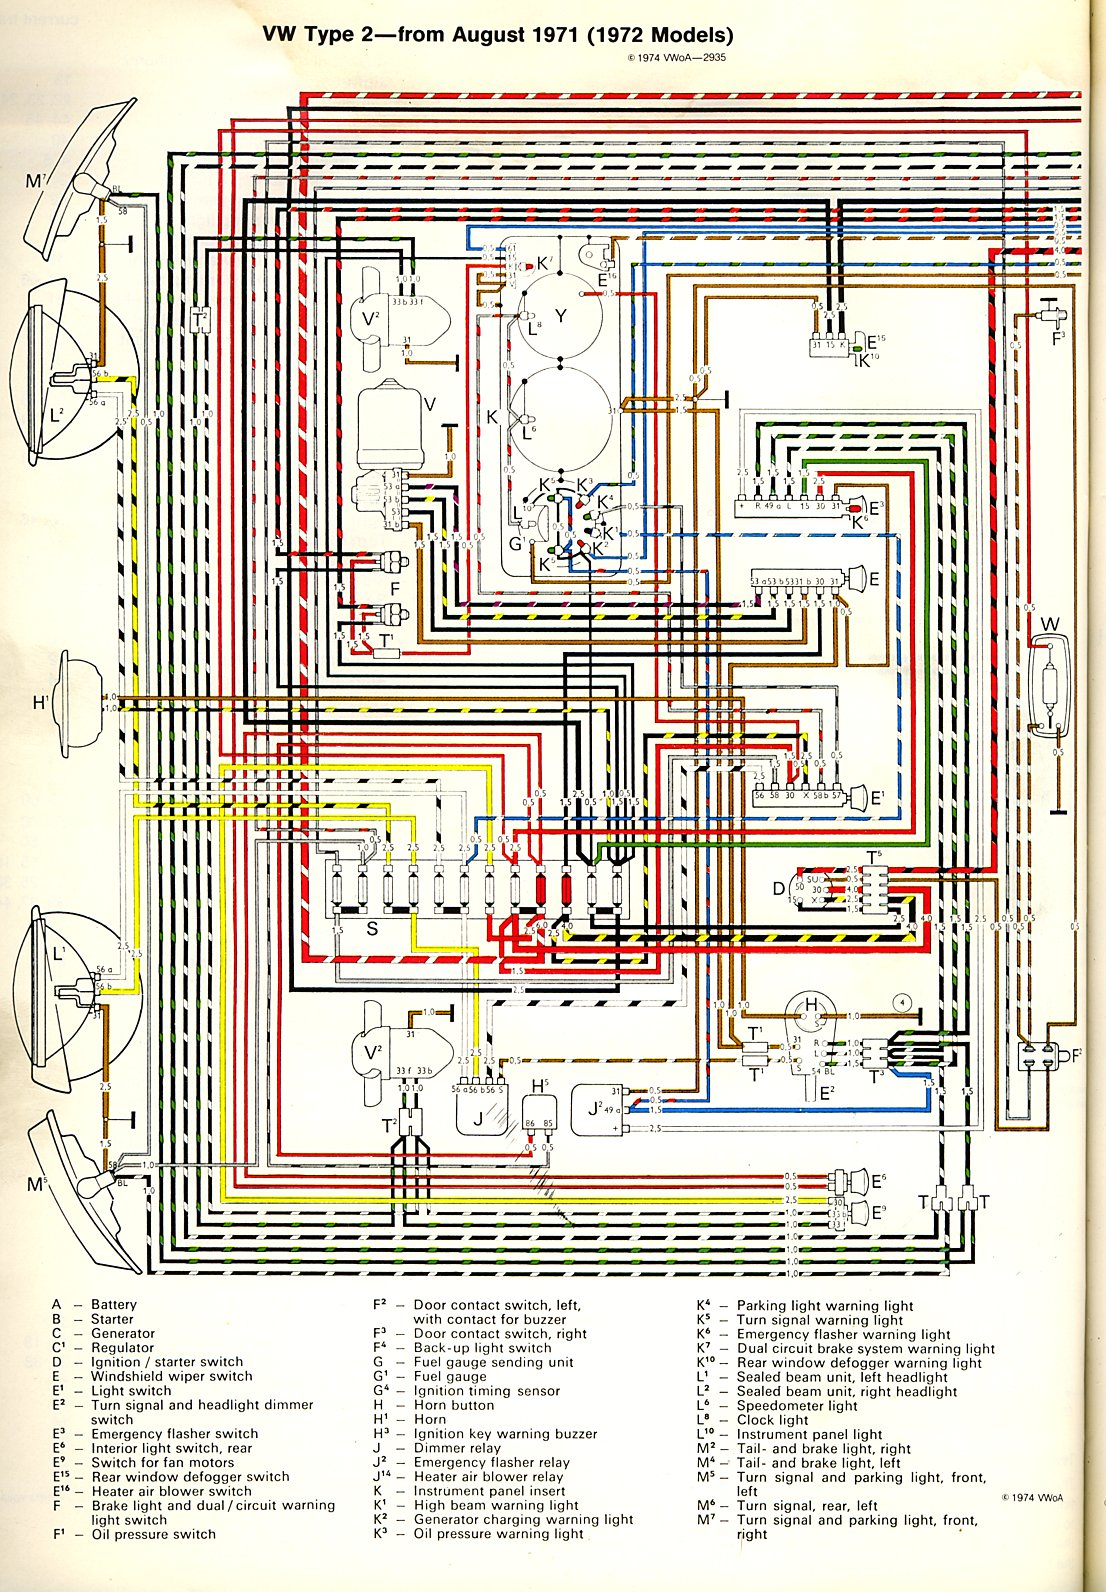 wiring diagram for 1971 vw bus the wiring diagram 1972 bus wiring diagram thegoldenbug wiring diagram